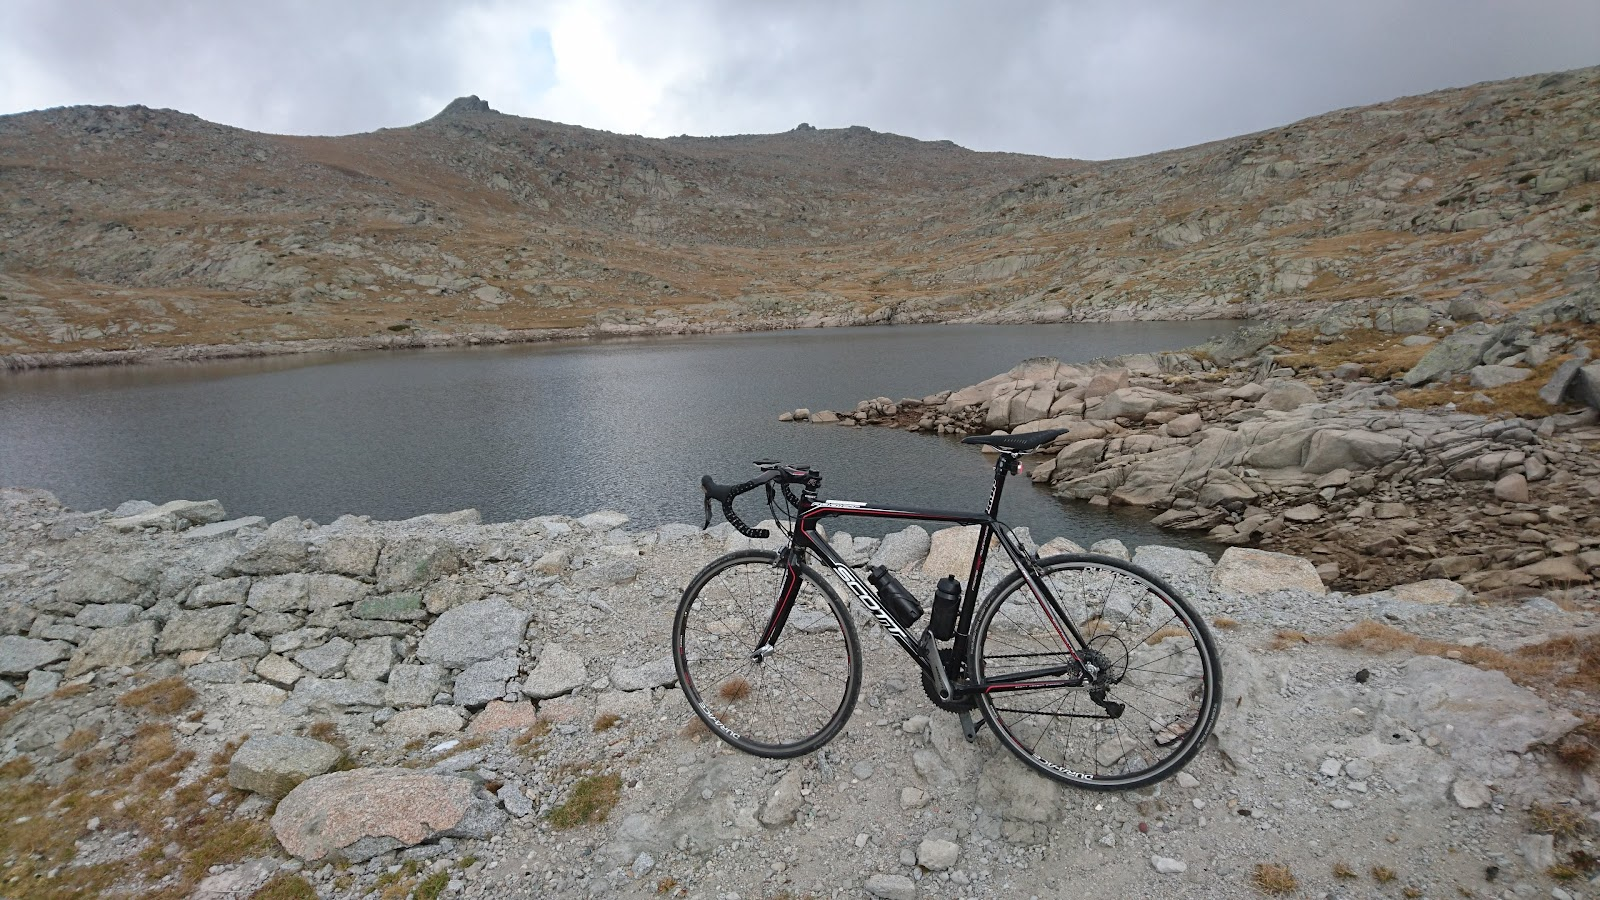 Rila climb by bike - bicycle at dam and reservoir